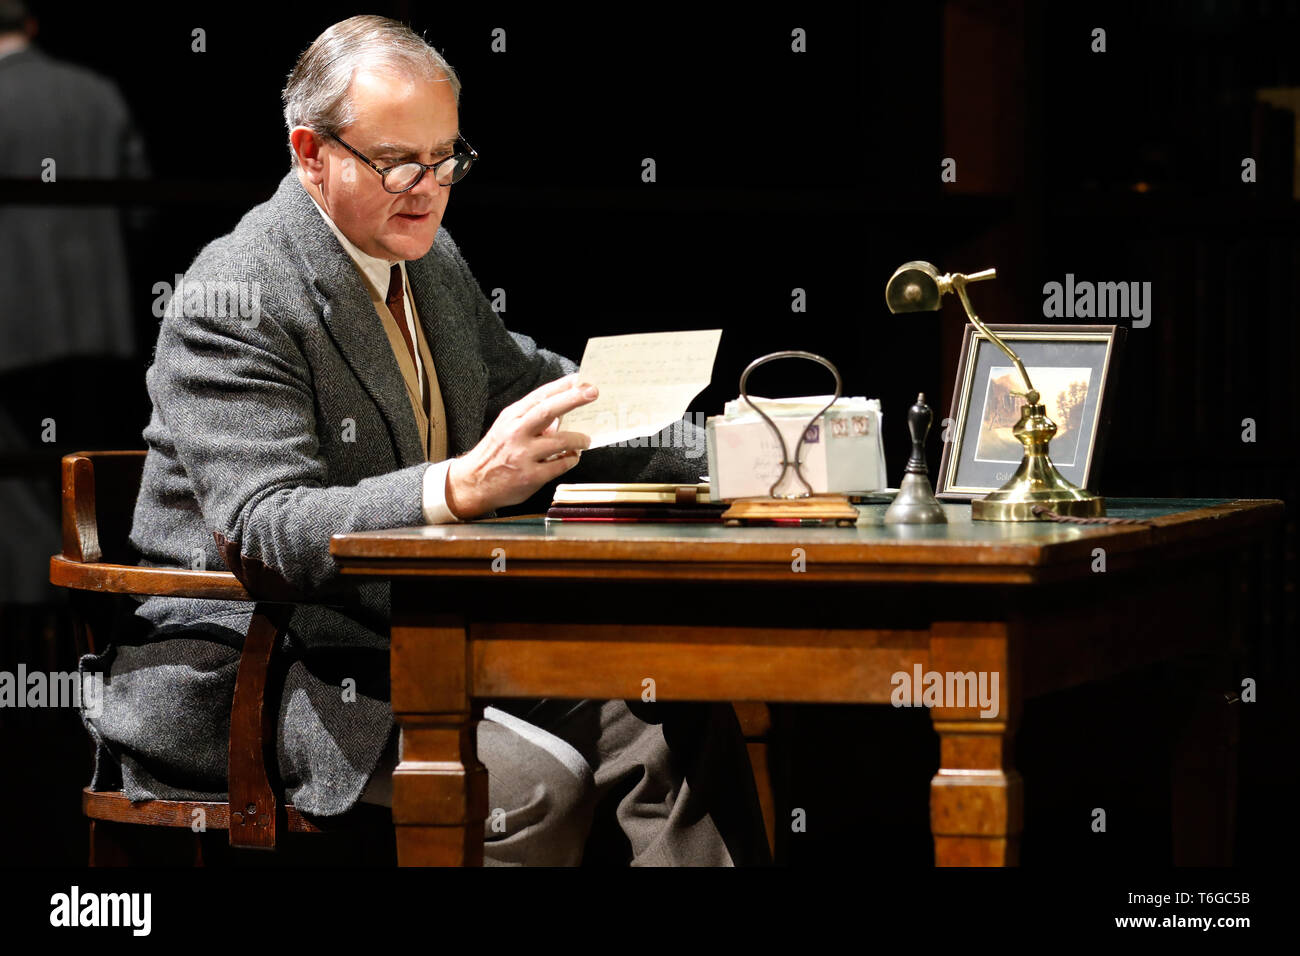 Chichester, UK. 1st May 2019. Hugh Bonneville performs as C.S. Lewis during a photocall for William Nicholson's 'Shadowlands' at the Chichester Festival Theatre in West Sussex, UK Wednesday May, 1, 2019. The play, directed by Rachel Kavanaugh, runs until May 25. Photograph : Credit: Luke MacGregor/Alamy Live News - Stock Image